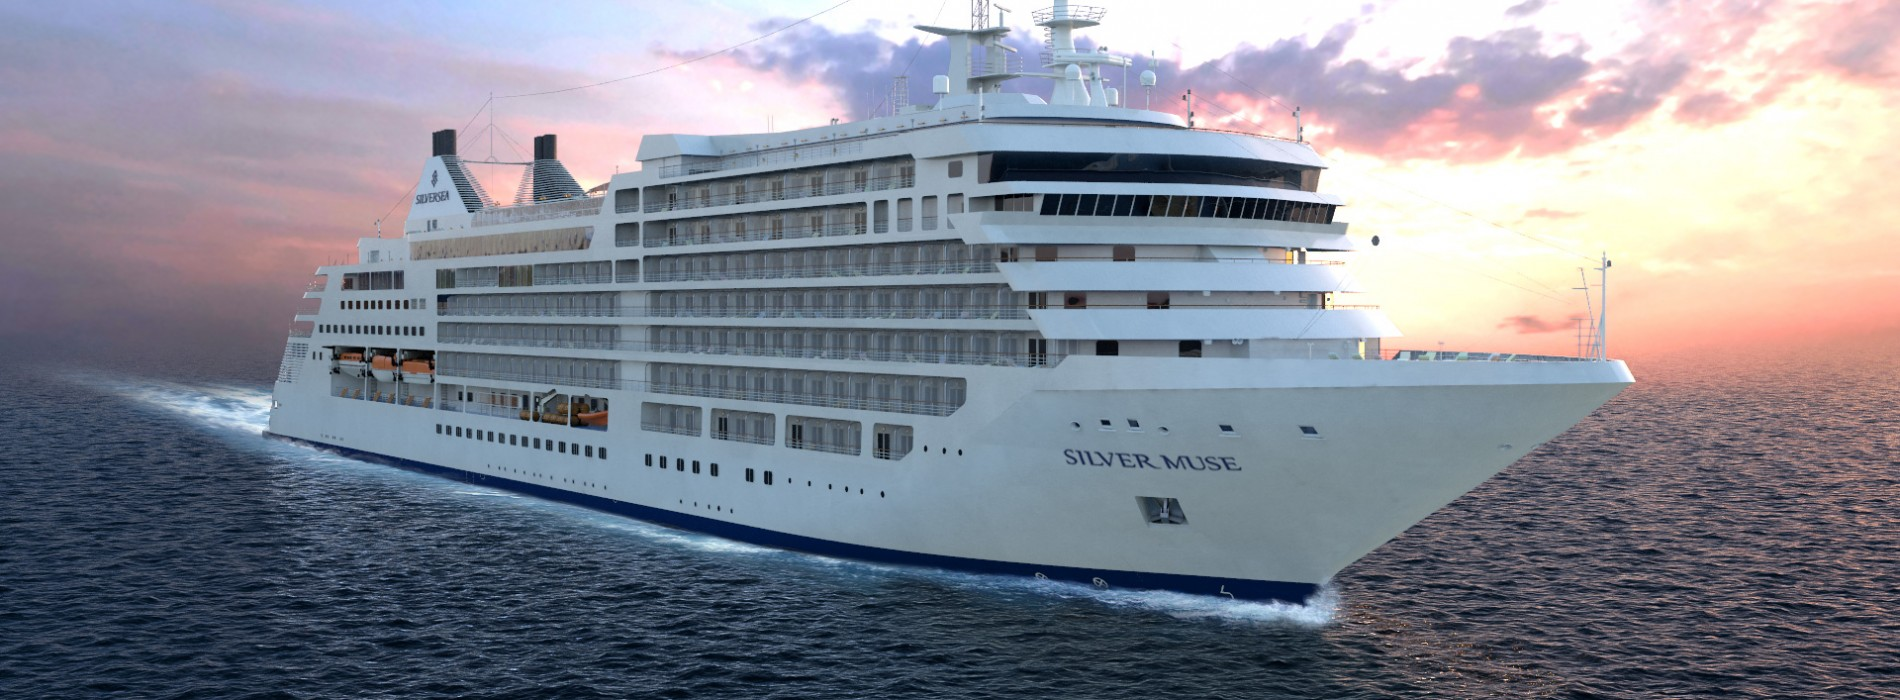 Royal Caribbean Cruises to purchase 67% stake in Silversea Cruises